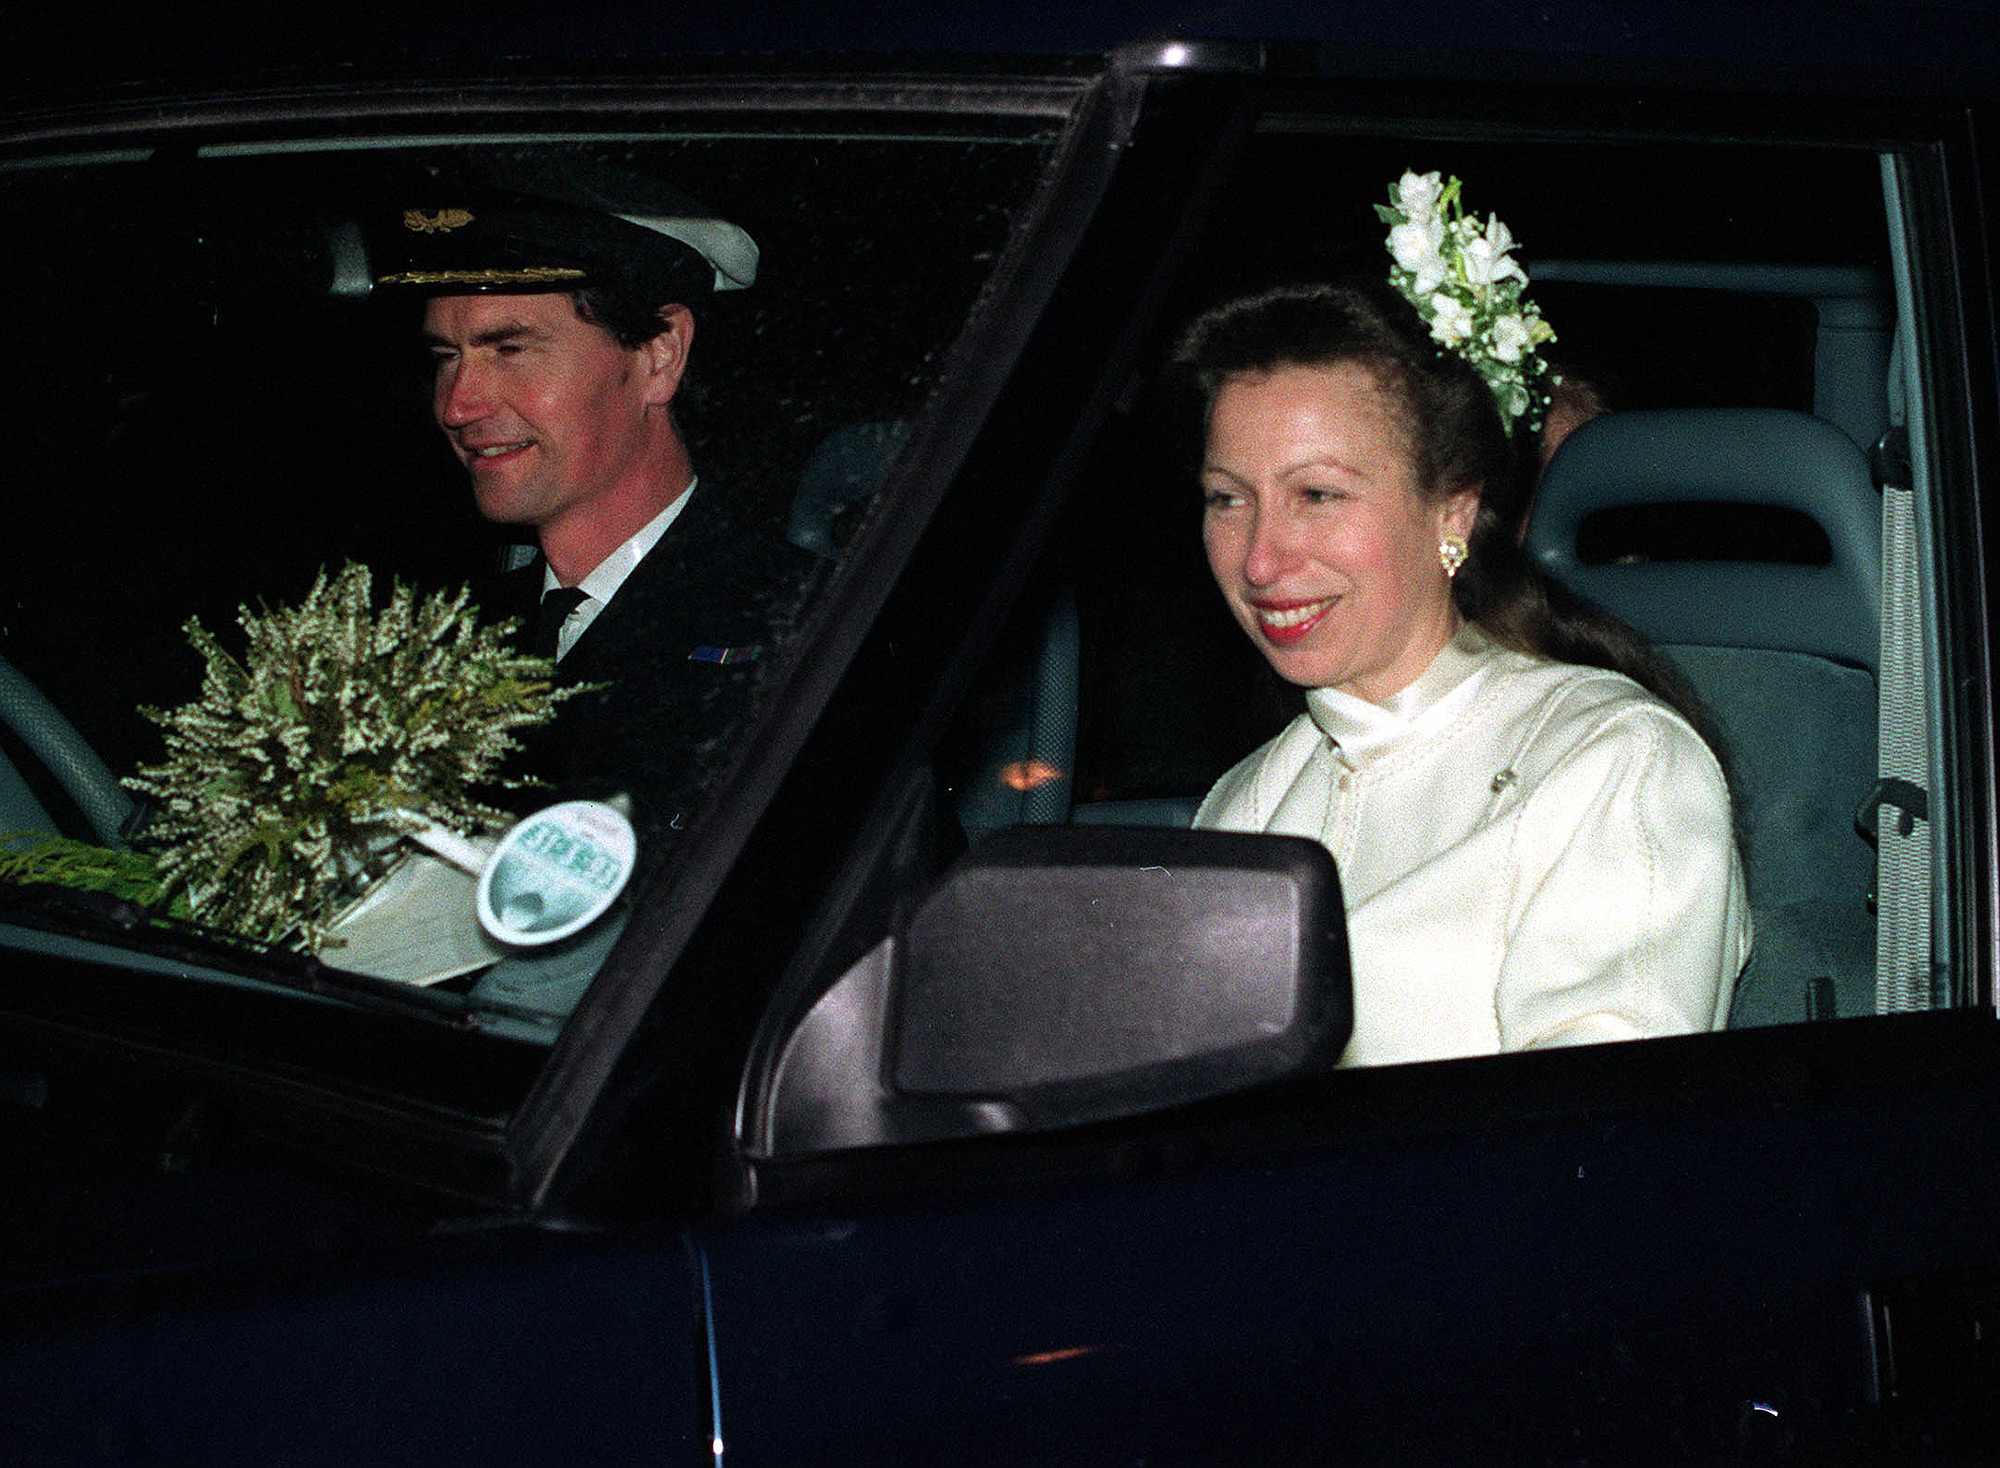 Commander Tim Laurence and the Princess Royal